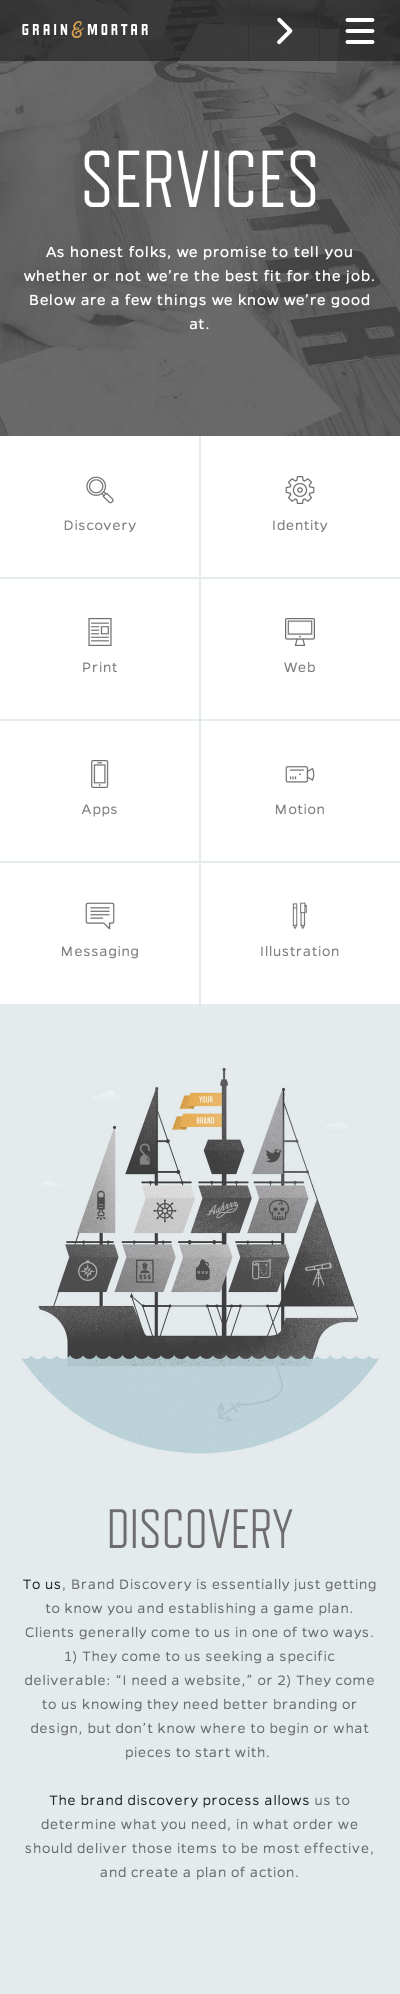 Mobile First Design from Grain & Mortar | PatternTap | ZURB Library